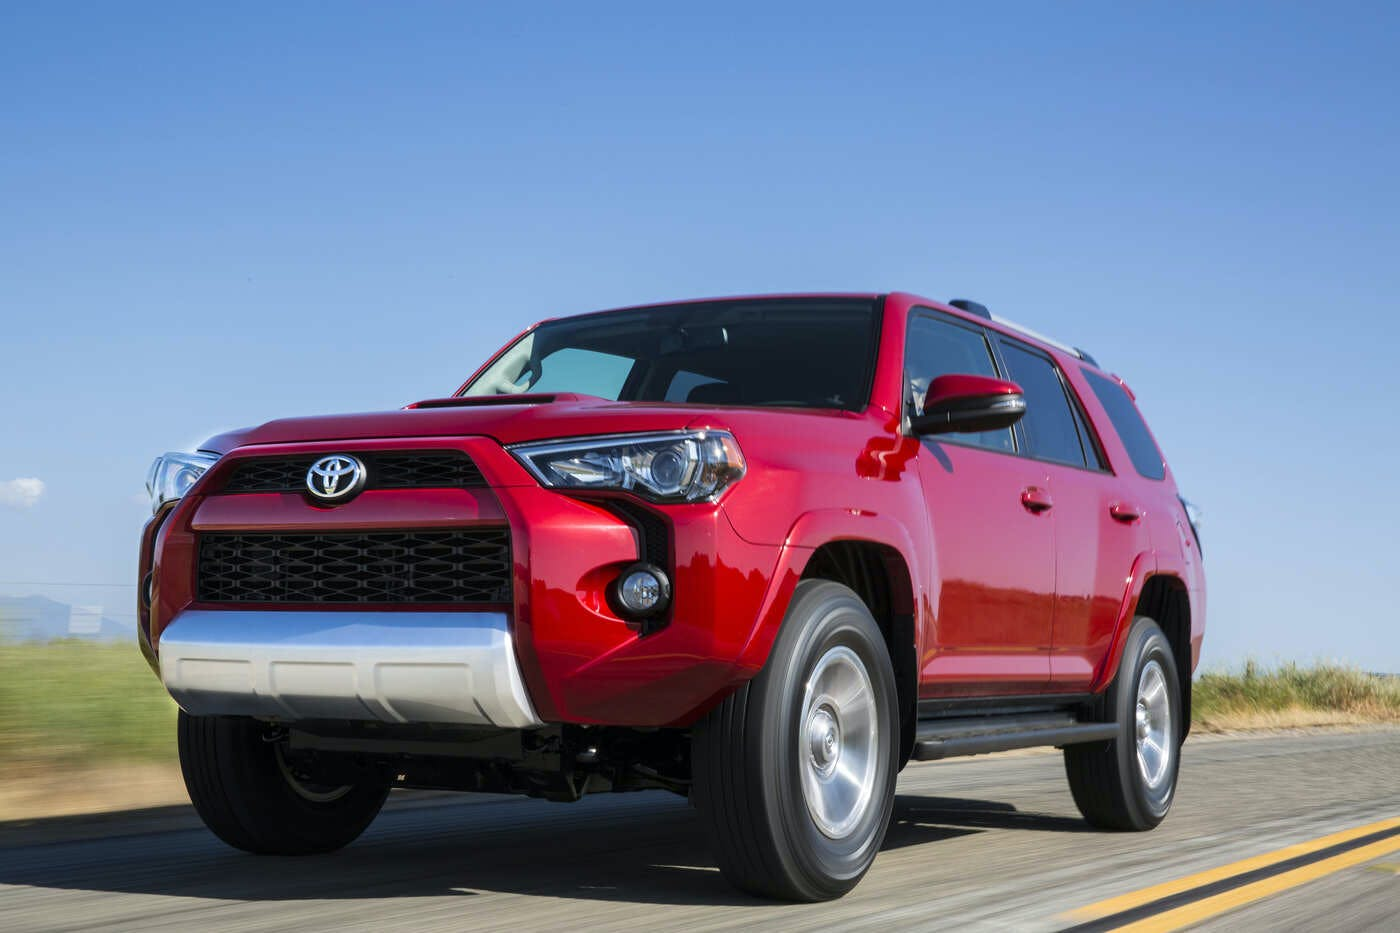 2019 Toyota 4Runner Comparisons, Reviews & Pictures | TrueCar